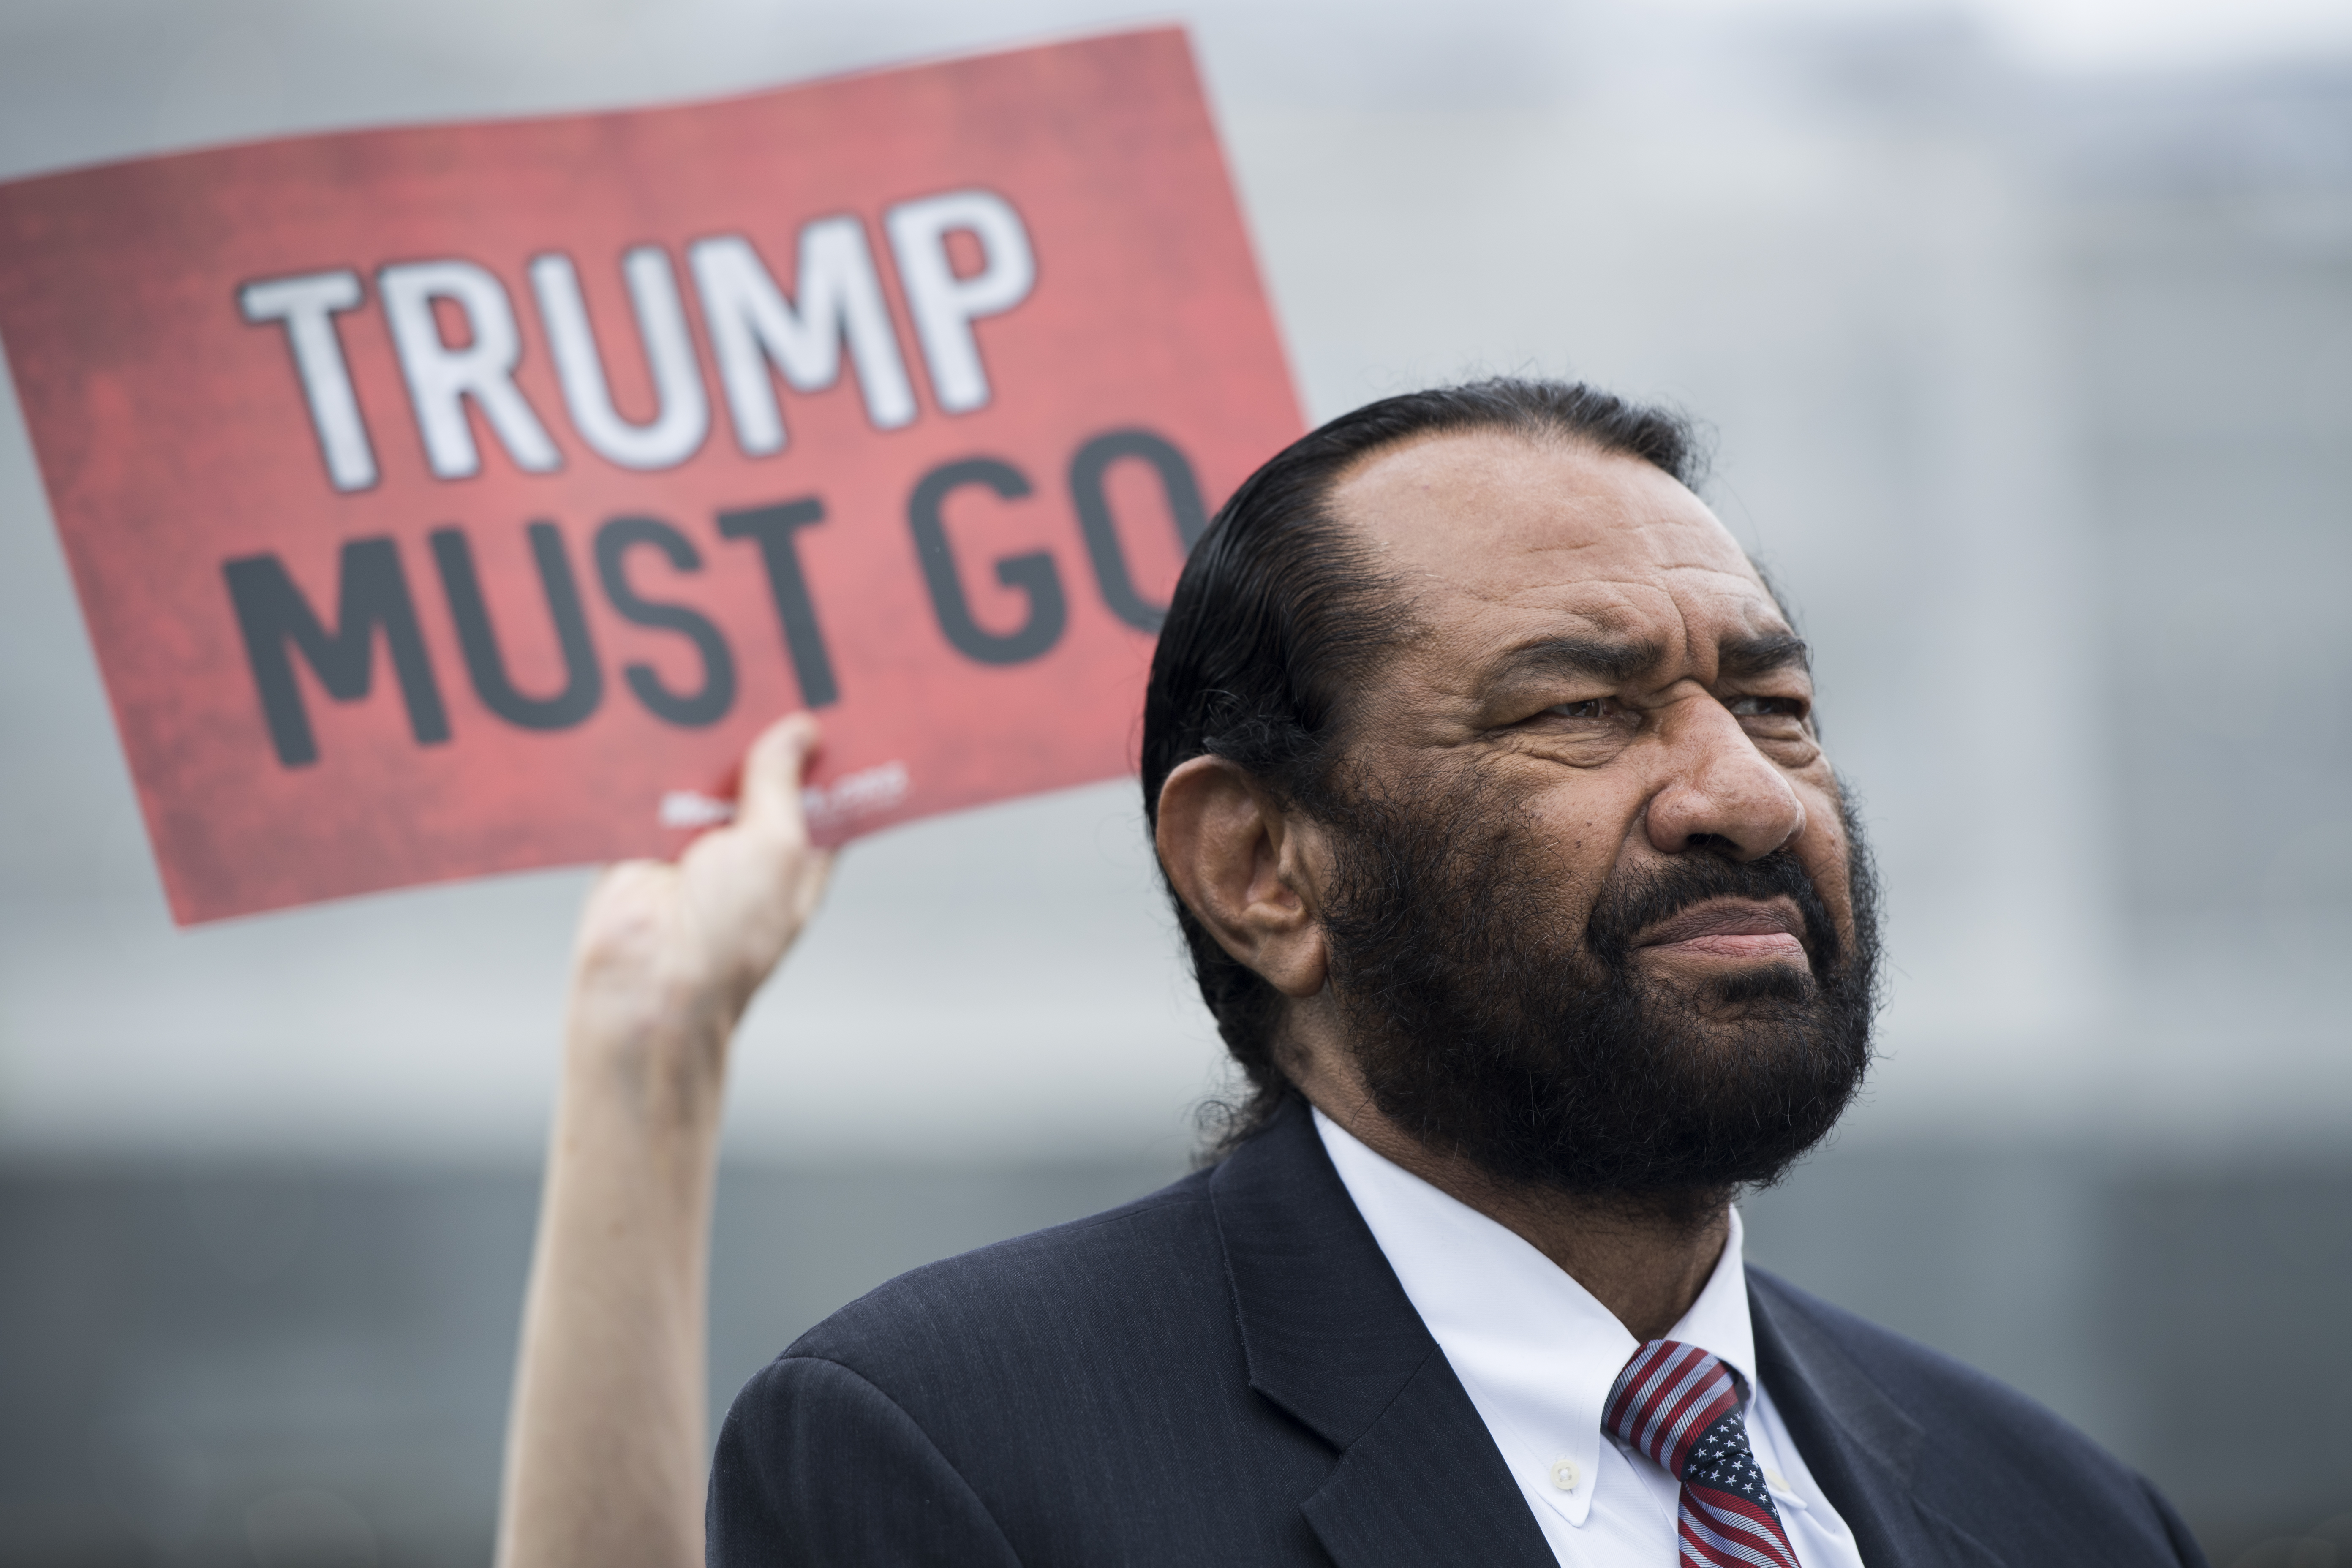 Rep. Al Green, D-Texas, participates in the event for coalition of advocacy groups delivering over ten million petition signatures to Congress on Thursday, May 9, 2019, urging the U.S. House of Representatives to start impeachment proceedings against Dona